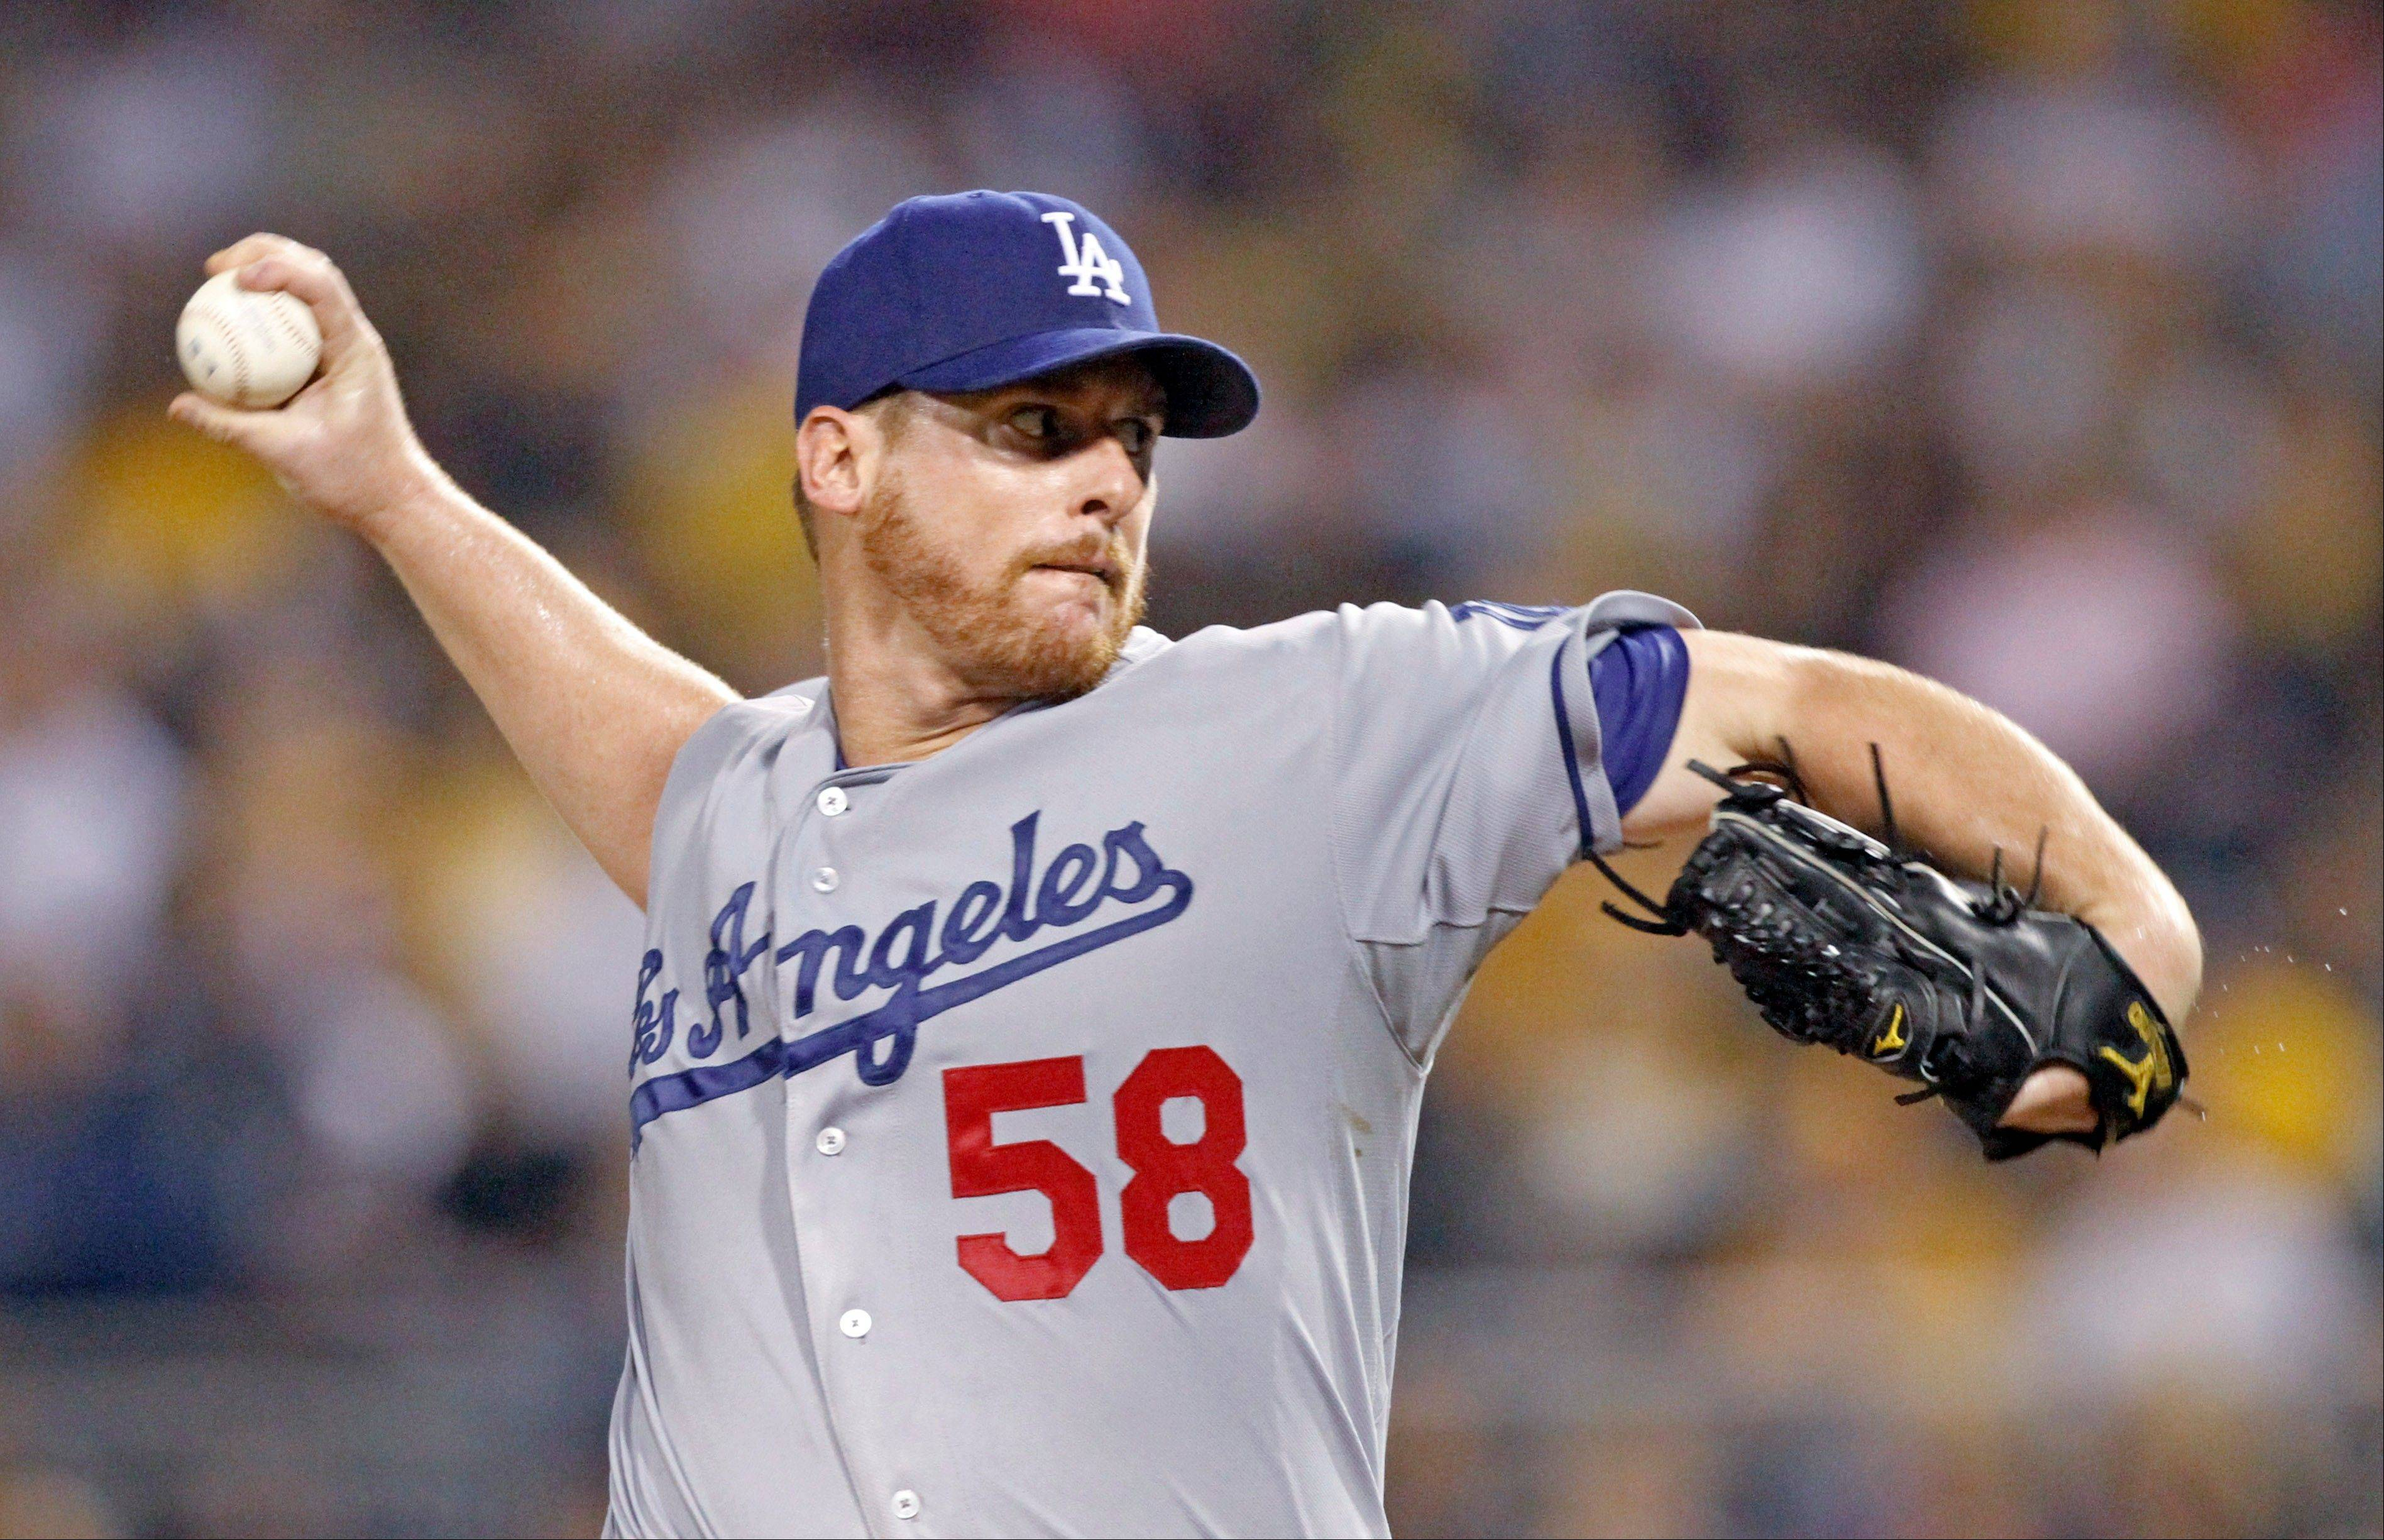 Los Angeles Dodgers starting pitcher Chad Billingsley throws to a Pittsburgh Pirates batter in the sixth inning of the baseball game Tuesday, Aug. 14, 2012, in Pittsburgh. The Dodgers won 11-0.